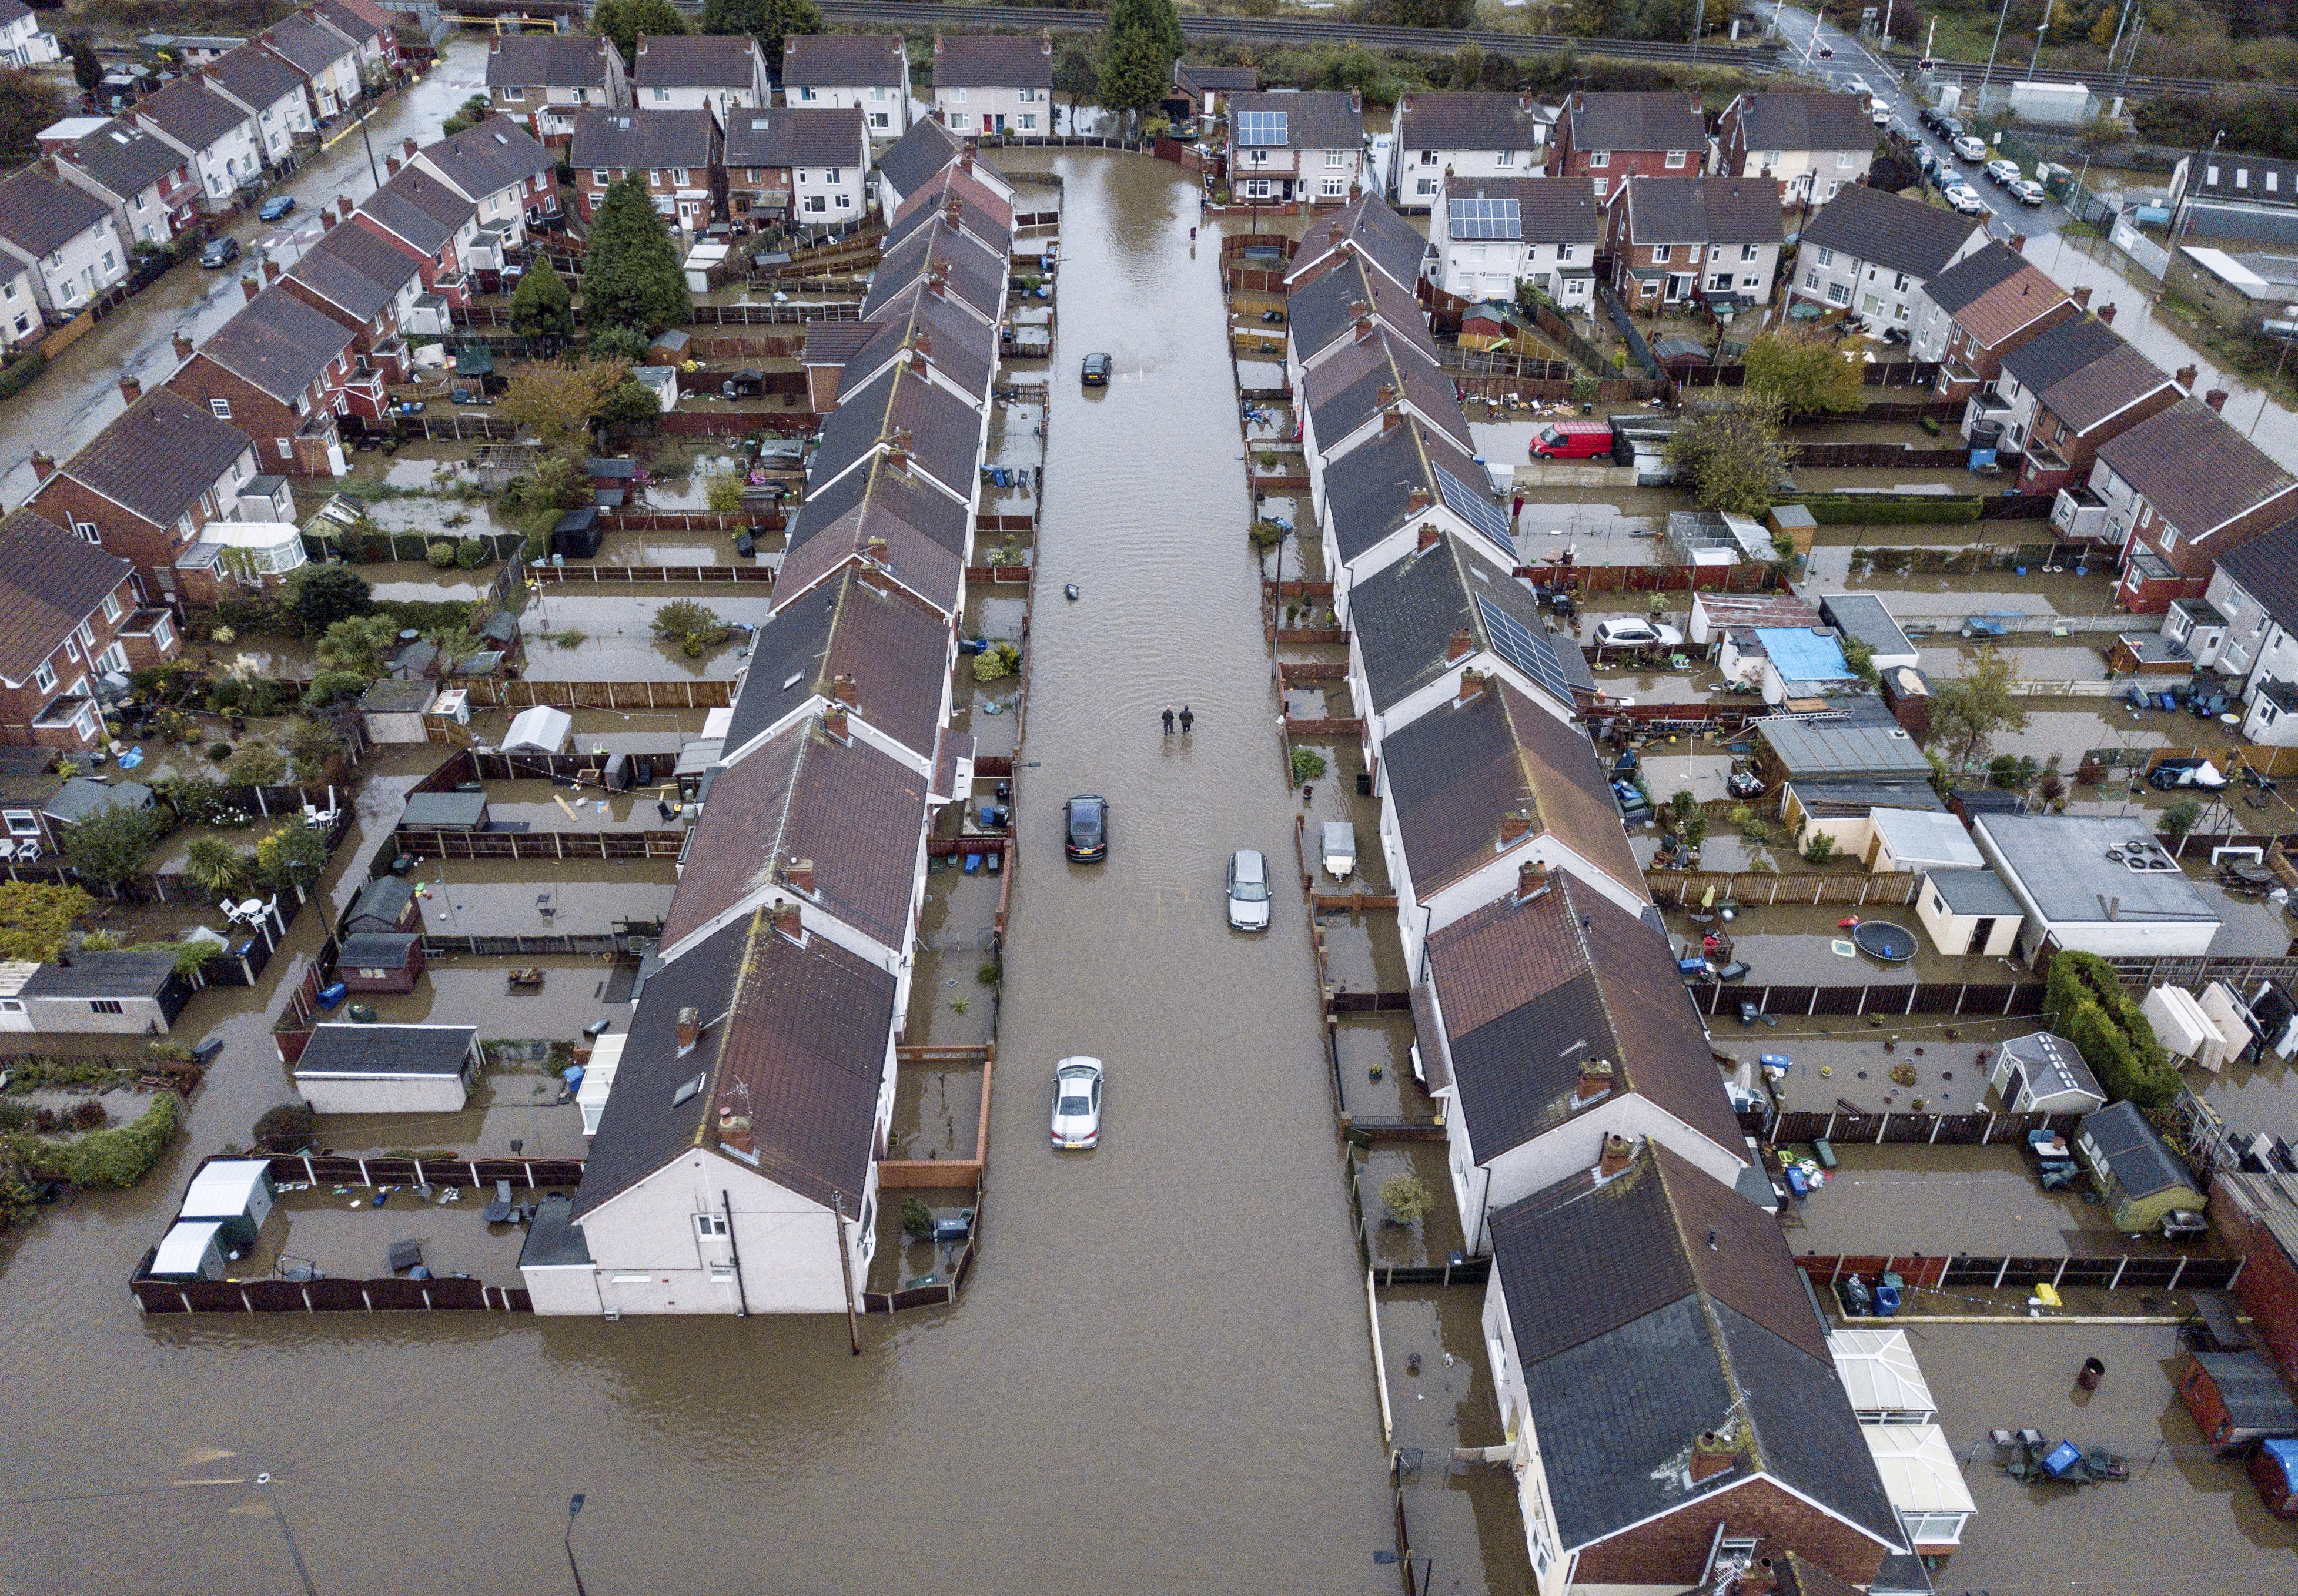 Shocking aerial snap shows homes submerged by rising flood water in Yarborough Terrace, Doncaster